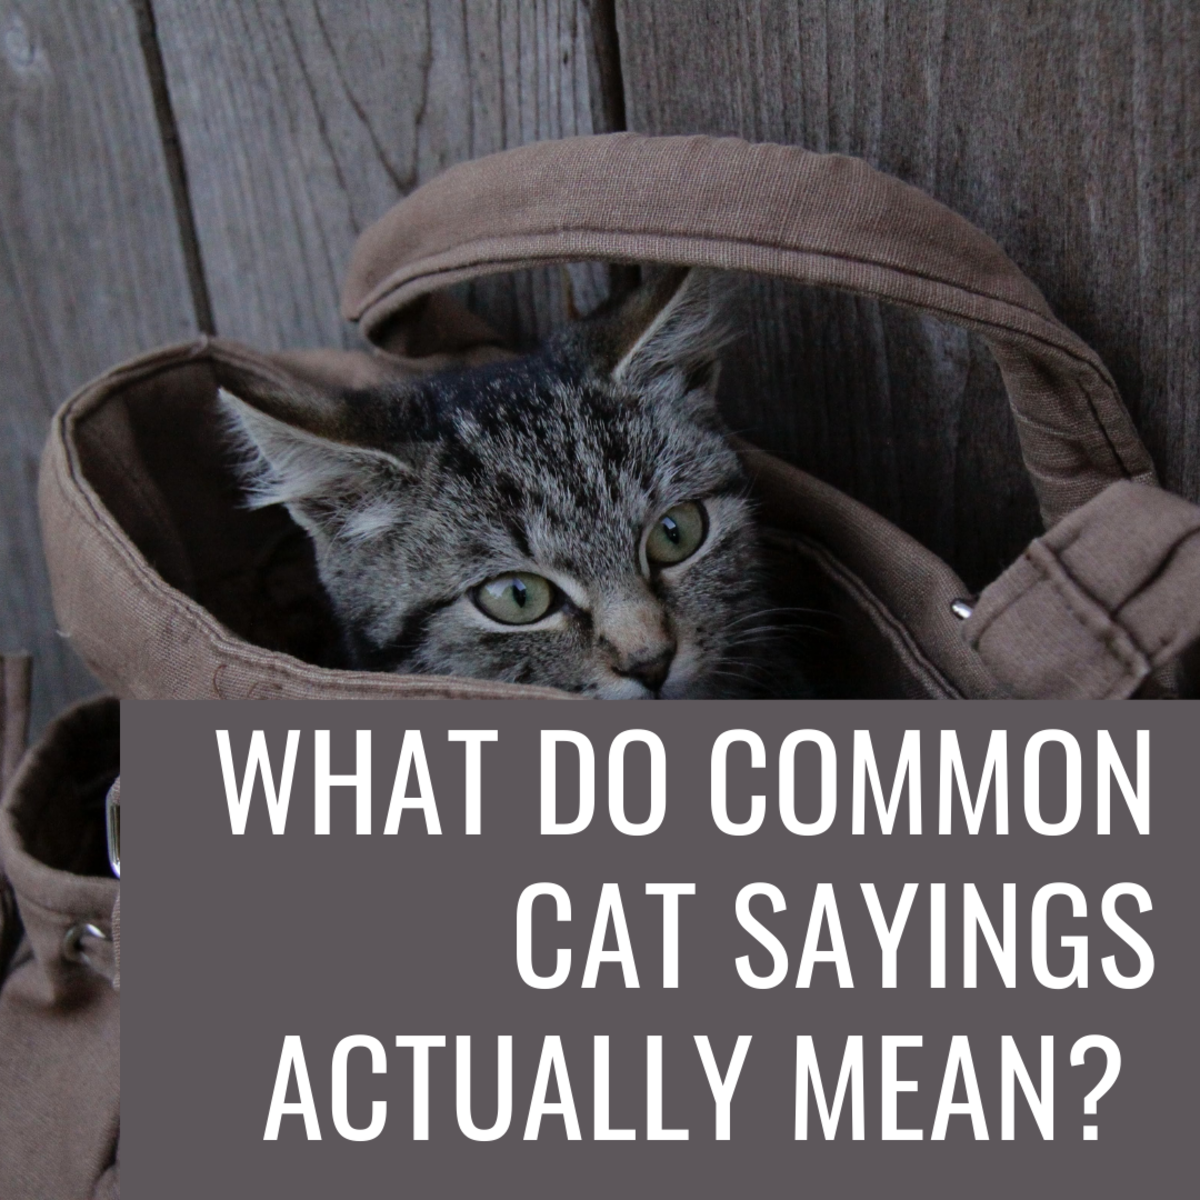 5 Popular Cat Clichés and Sayings: What Do They Mean?